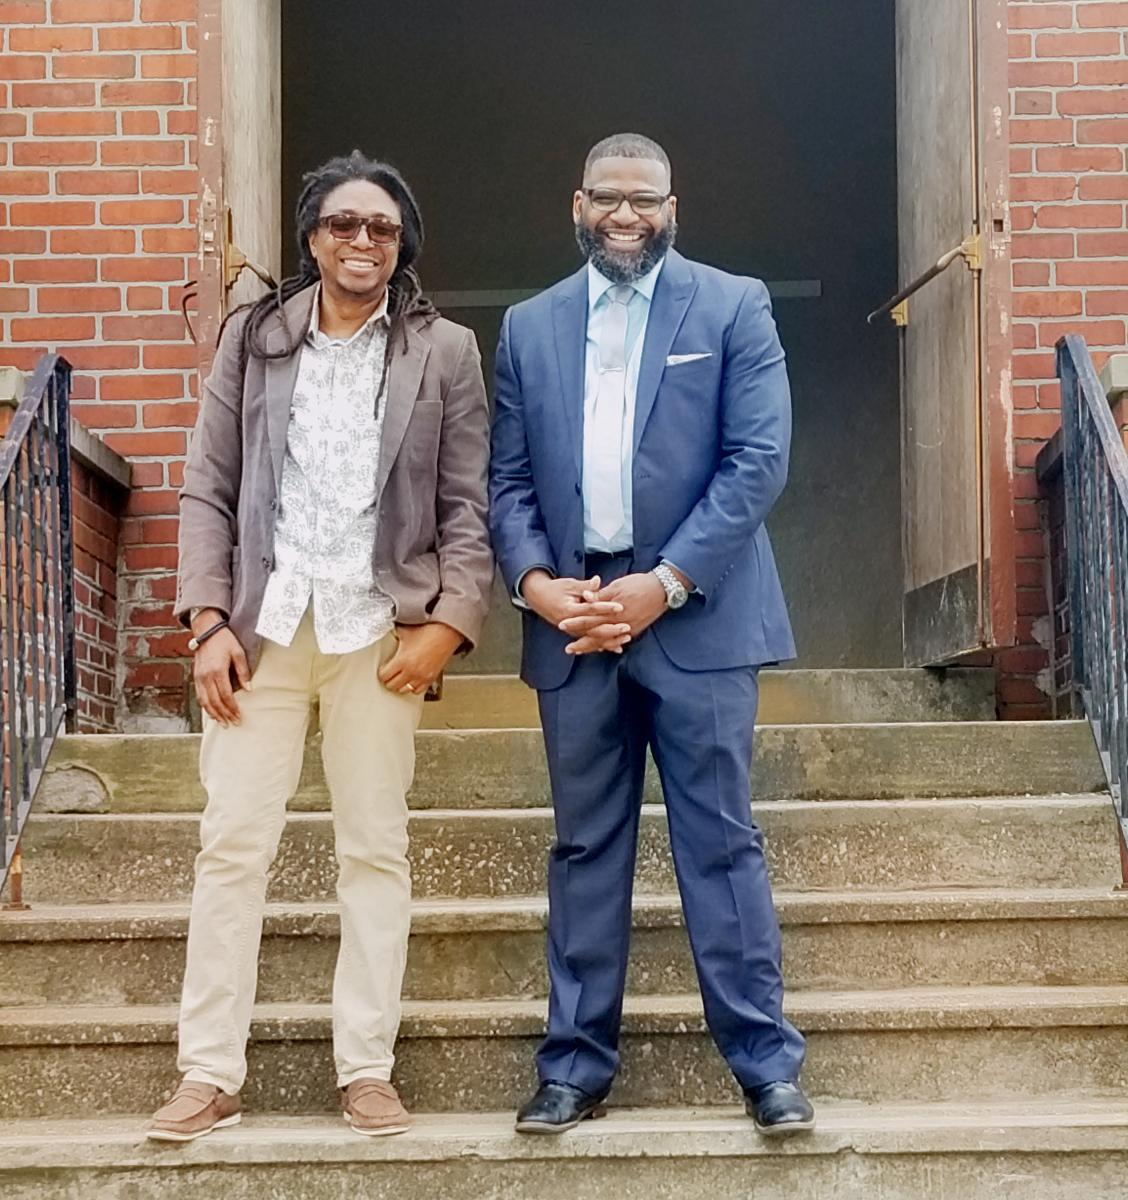 Olietunja Mann (left) and Maurice Belle, Westside church elder and pastor, respectively, lead an Adventist Recovery Ministries program.